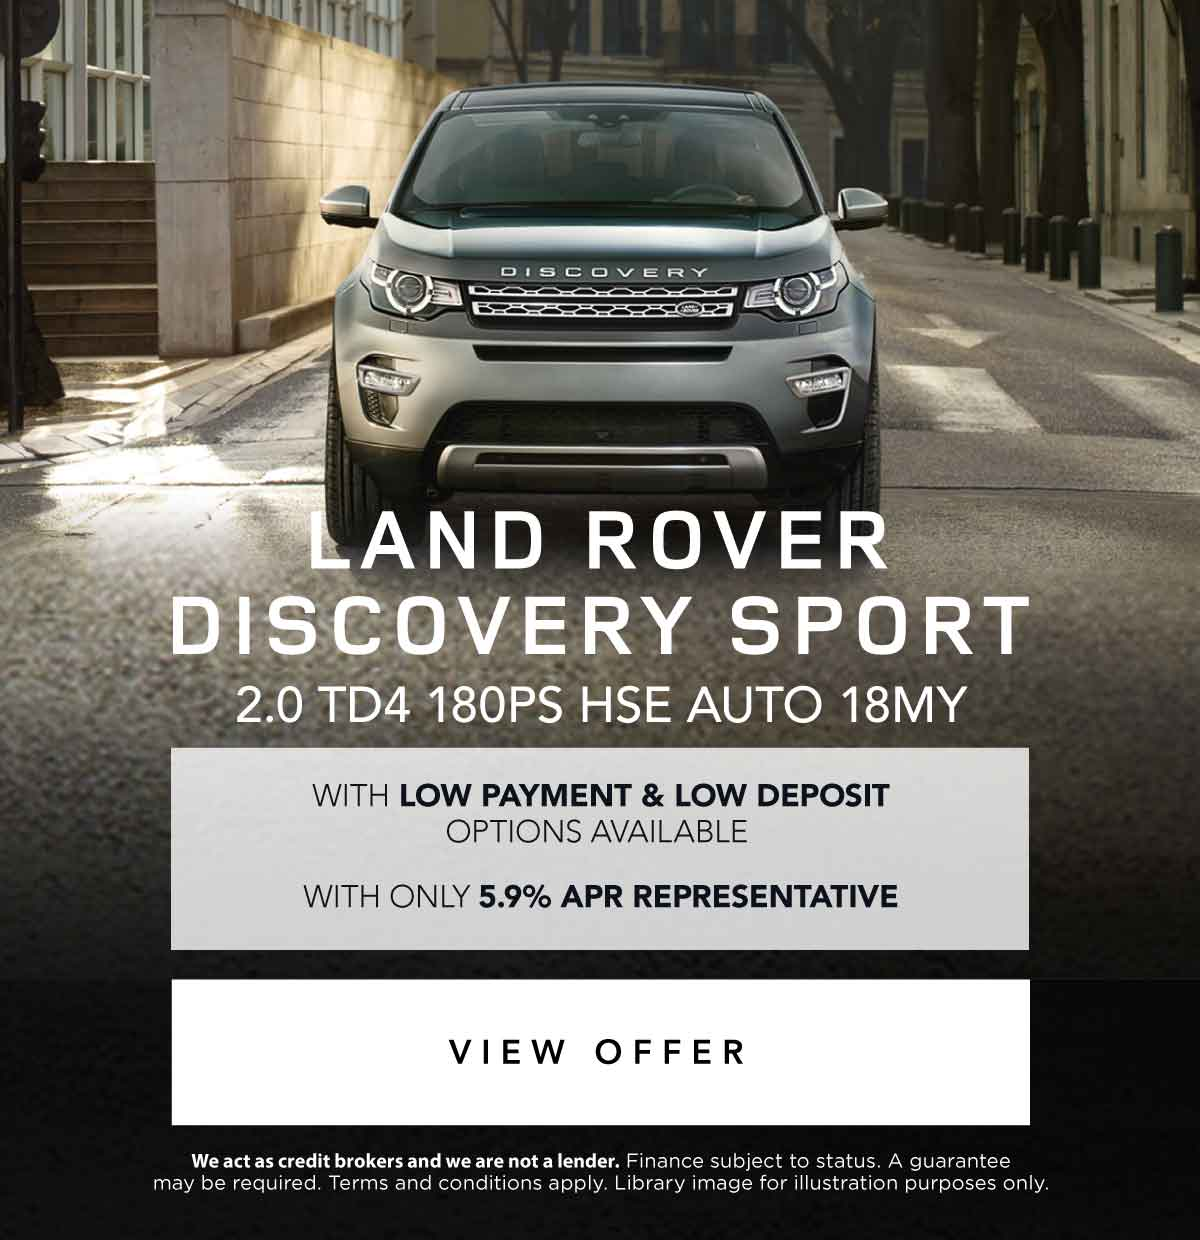 Land Rover Discovery Sport Offer 050418